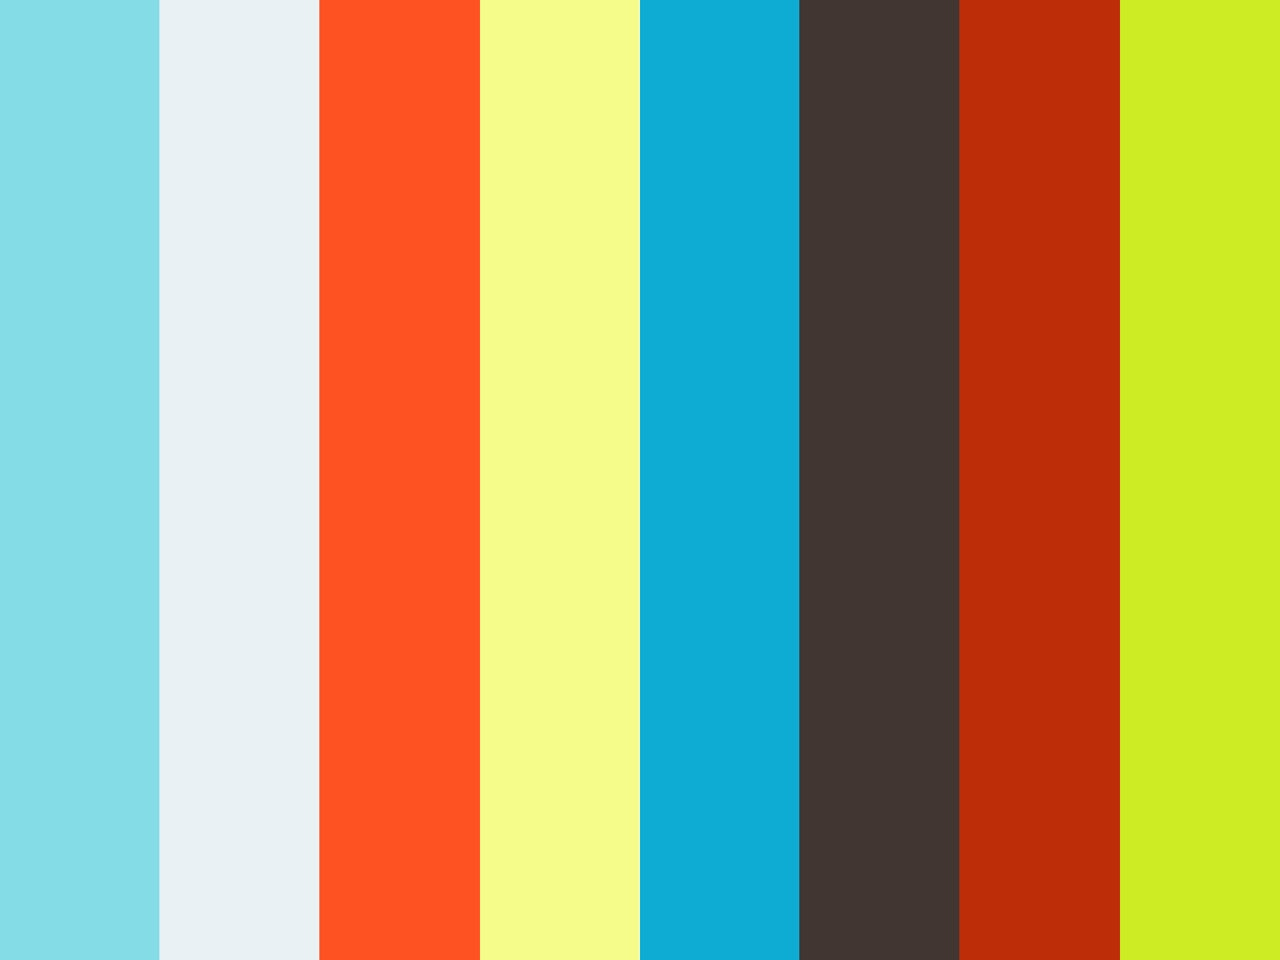 Monkey vs Tiger